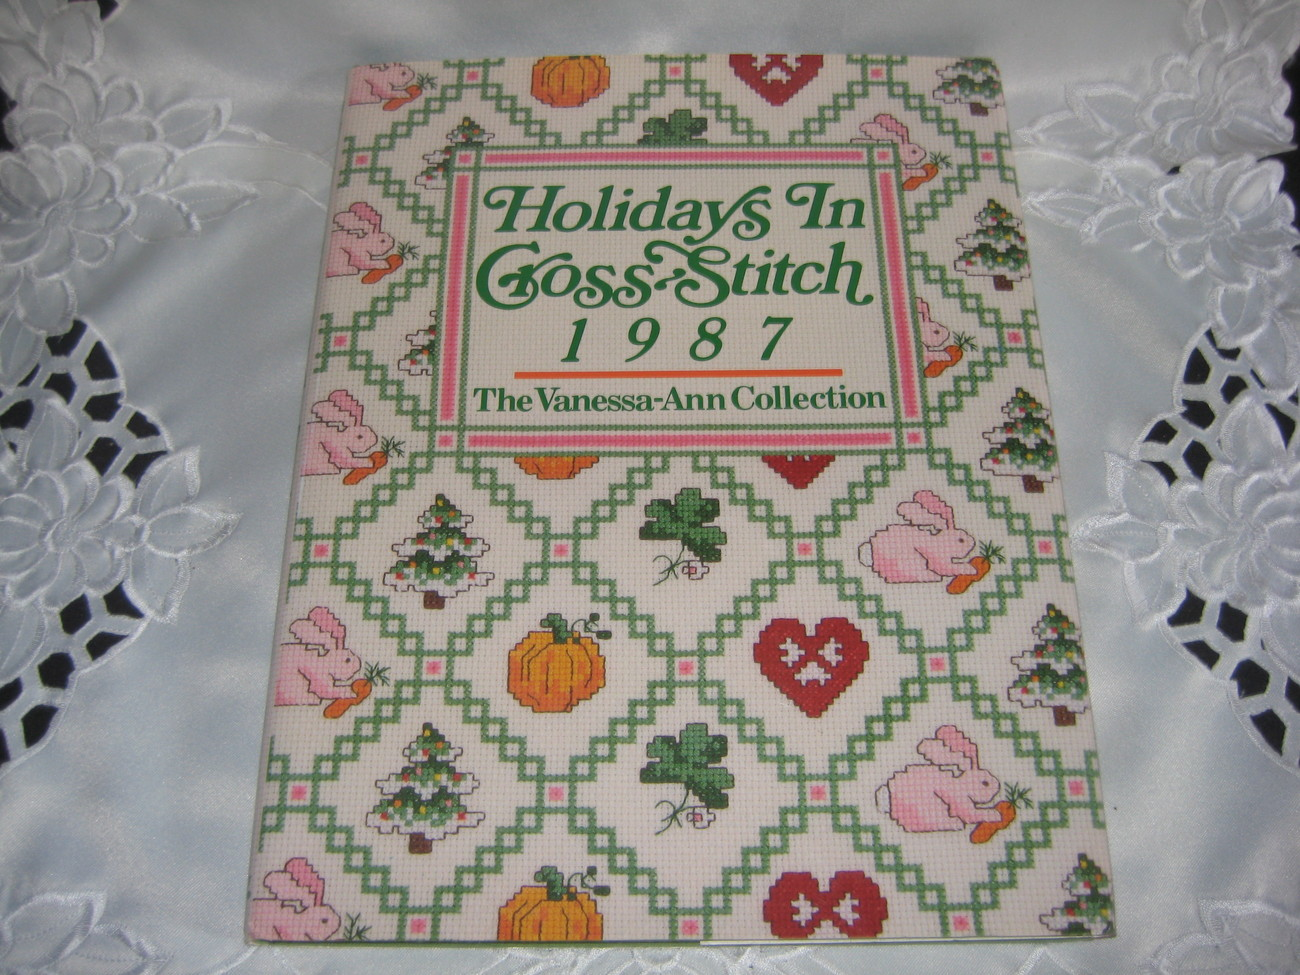 Holidays in Cross-Stitch 1987 Hardcover Book